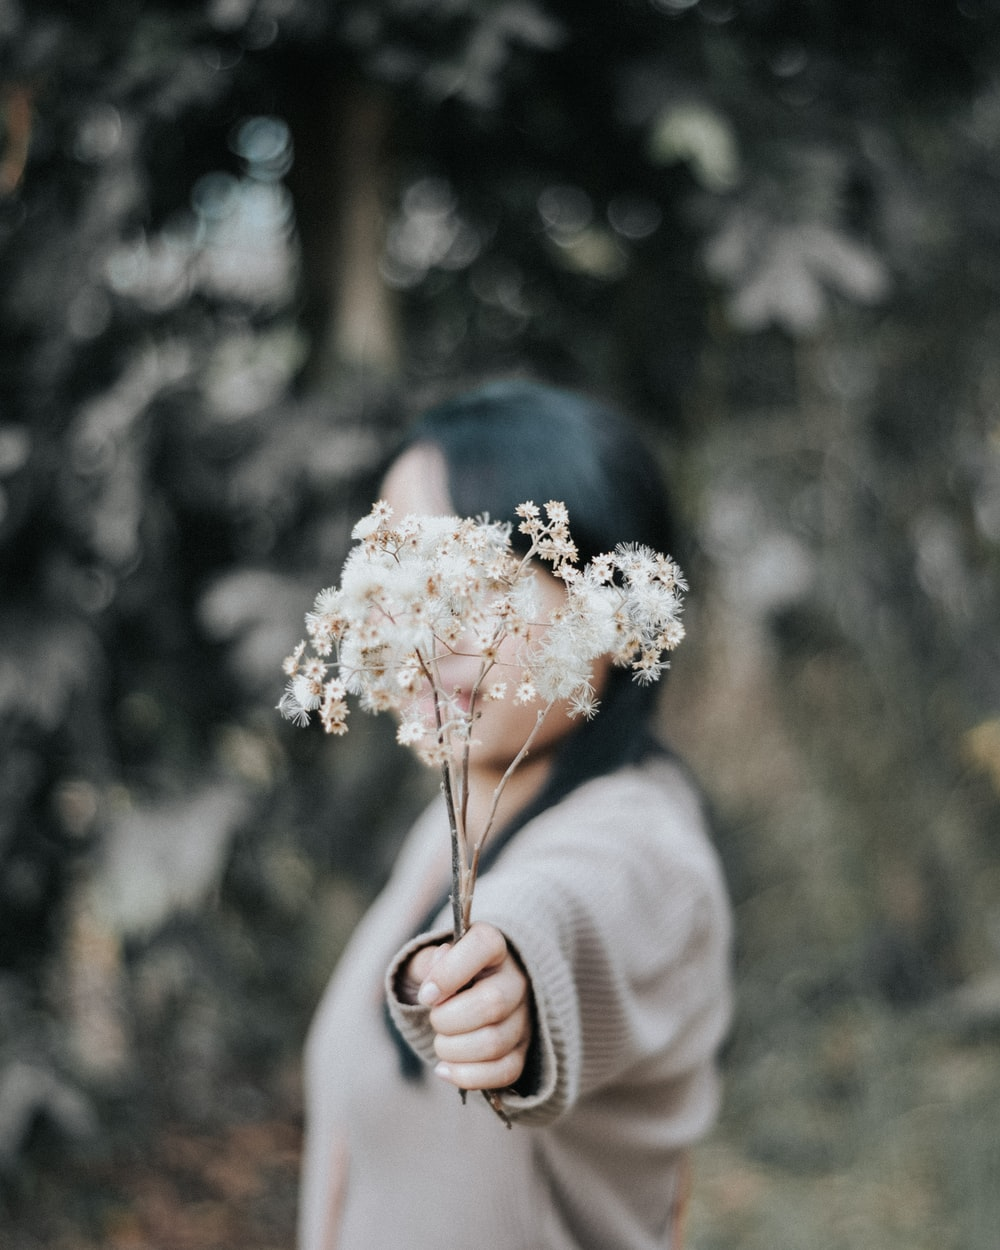 woman wearing brown sweater and holding white dandelion flowers